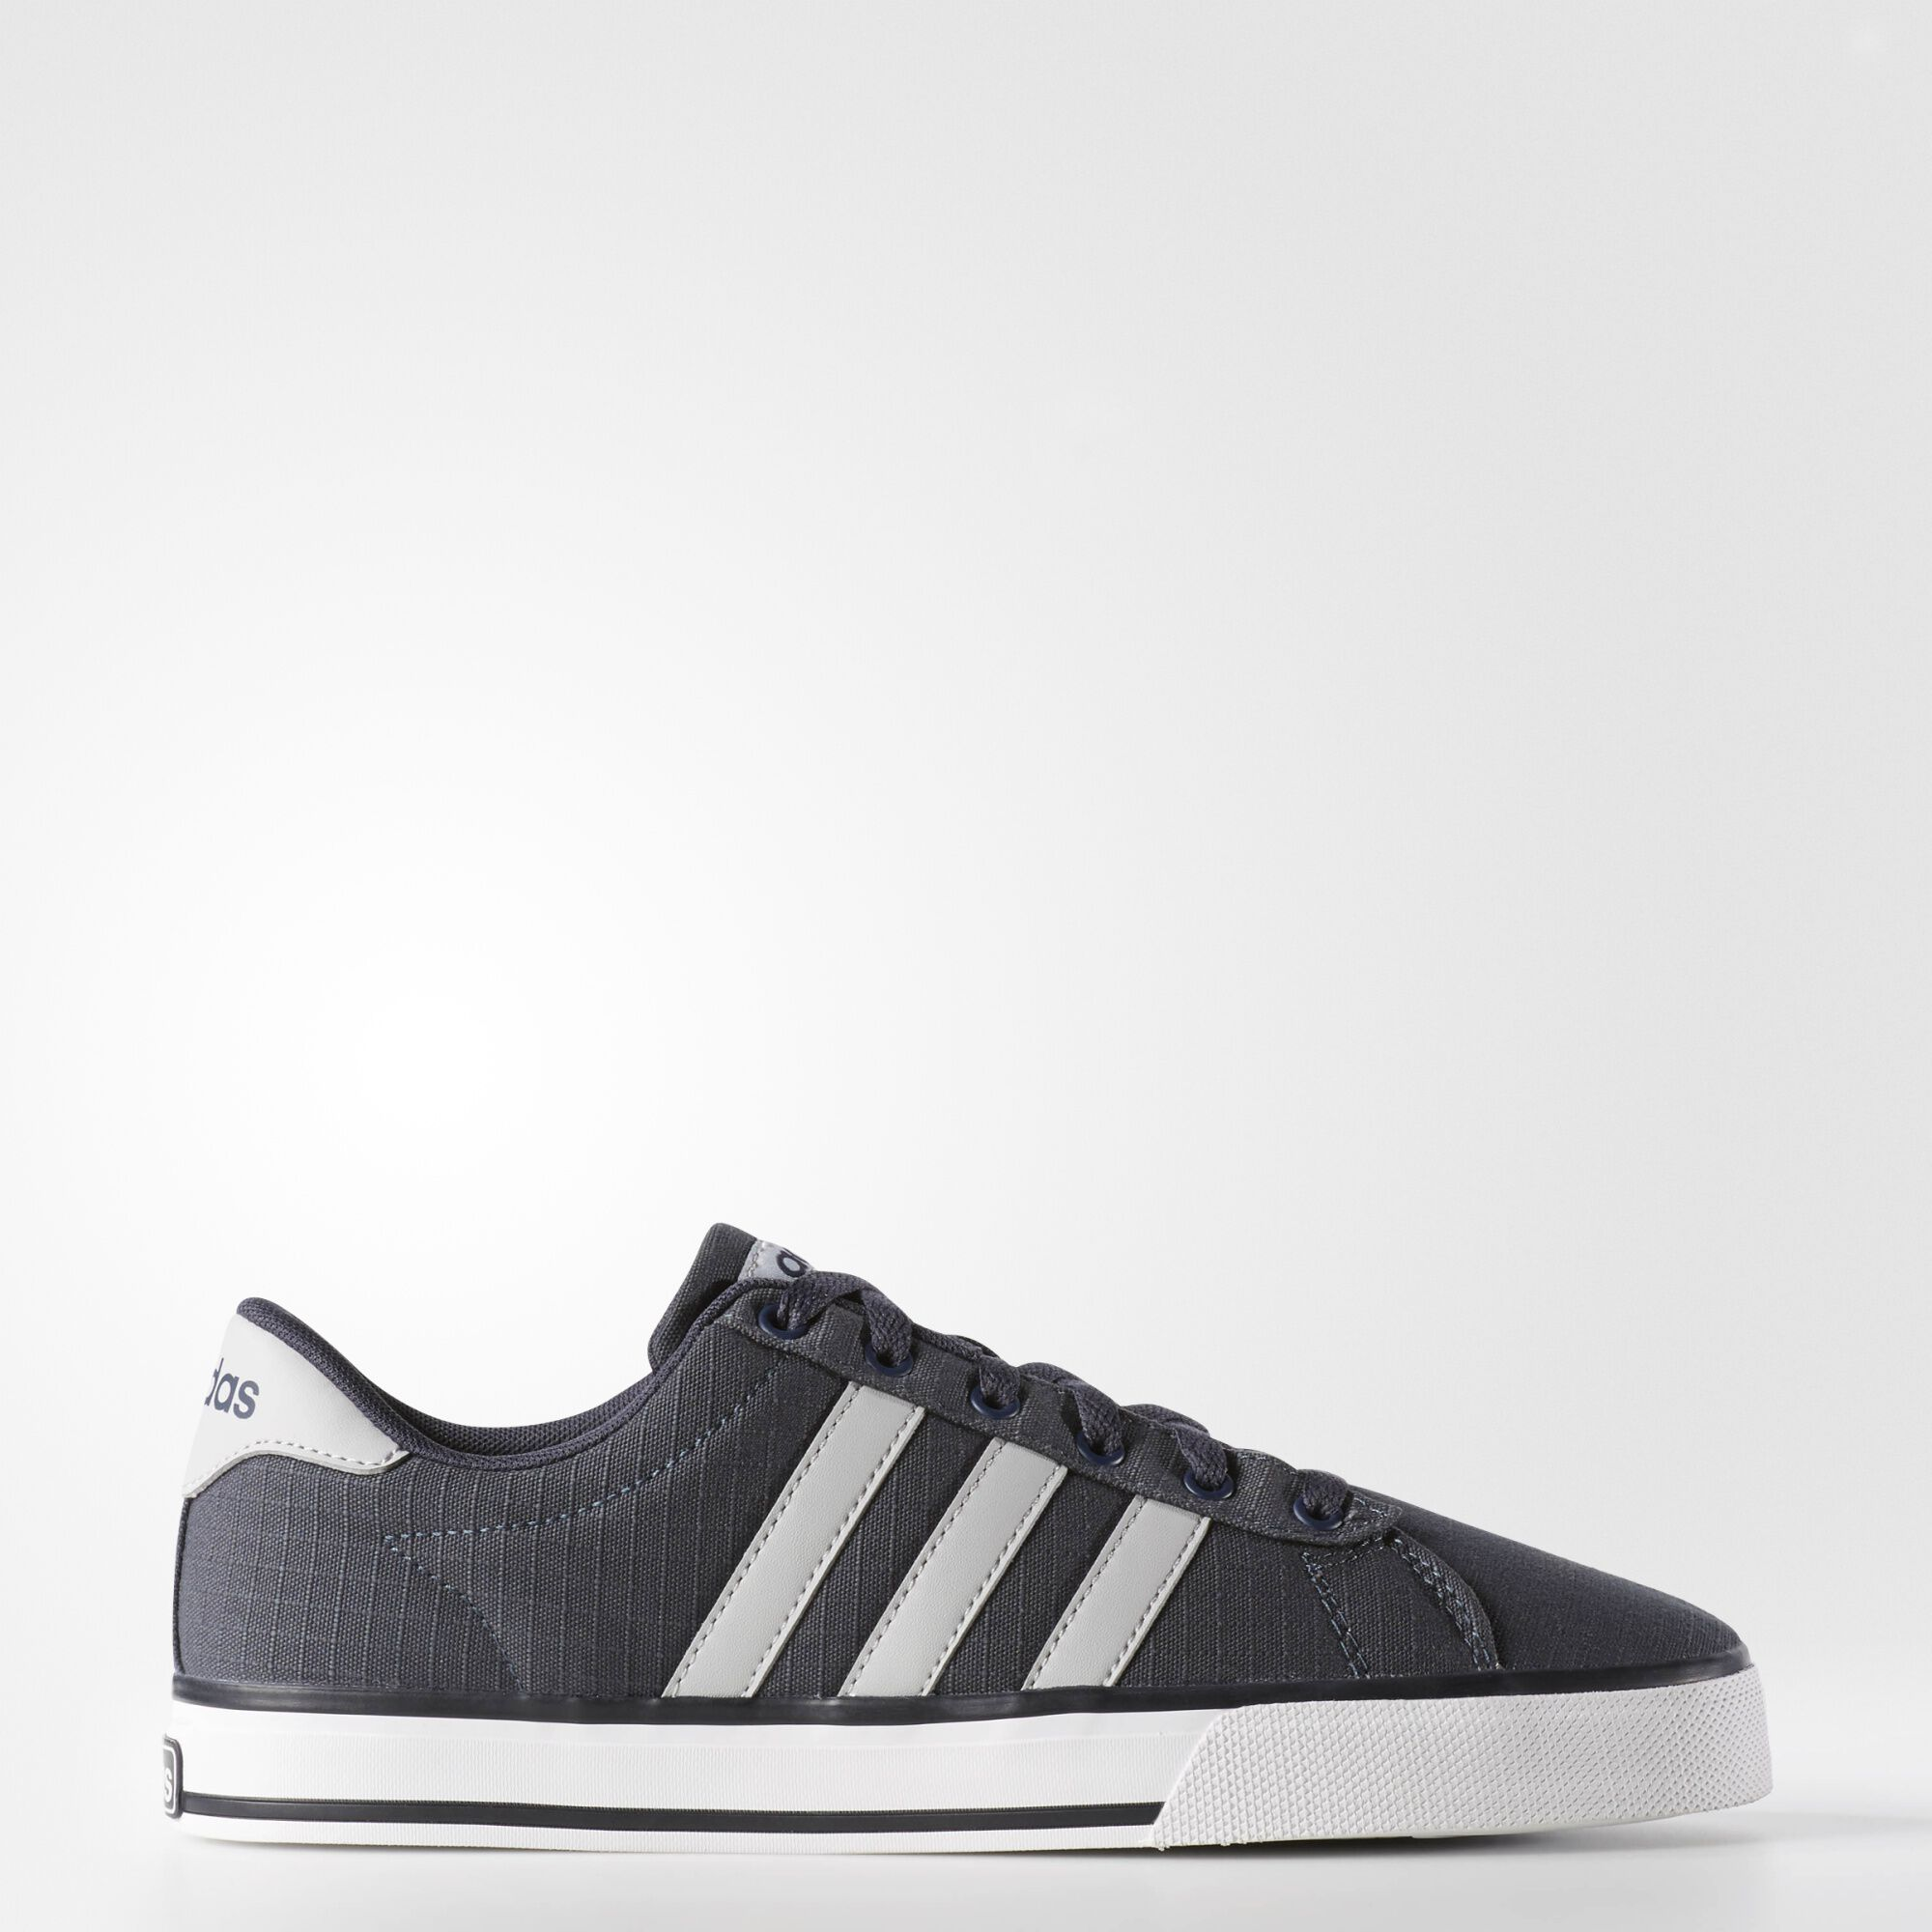 Adidas Neo Men&s Se Daily Vulc Mid Shoes